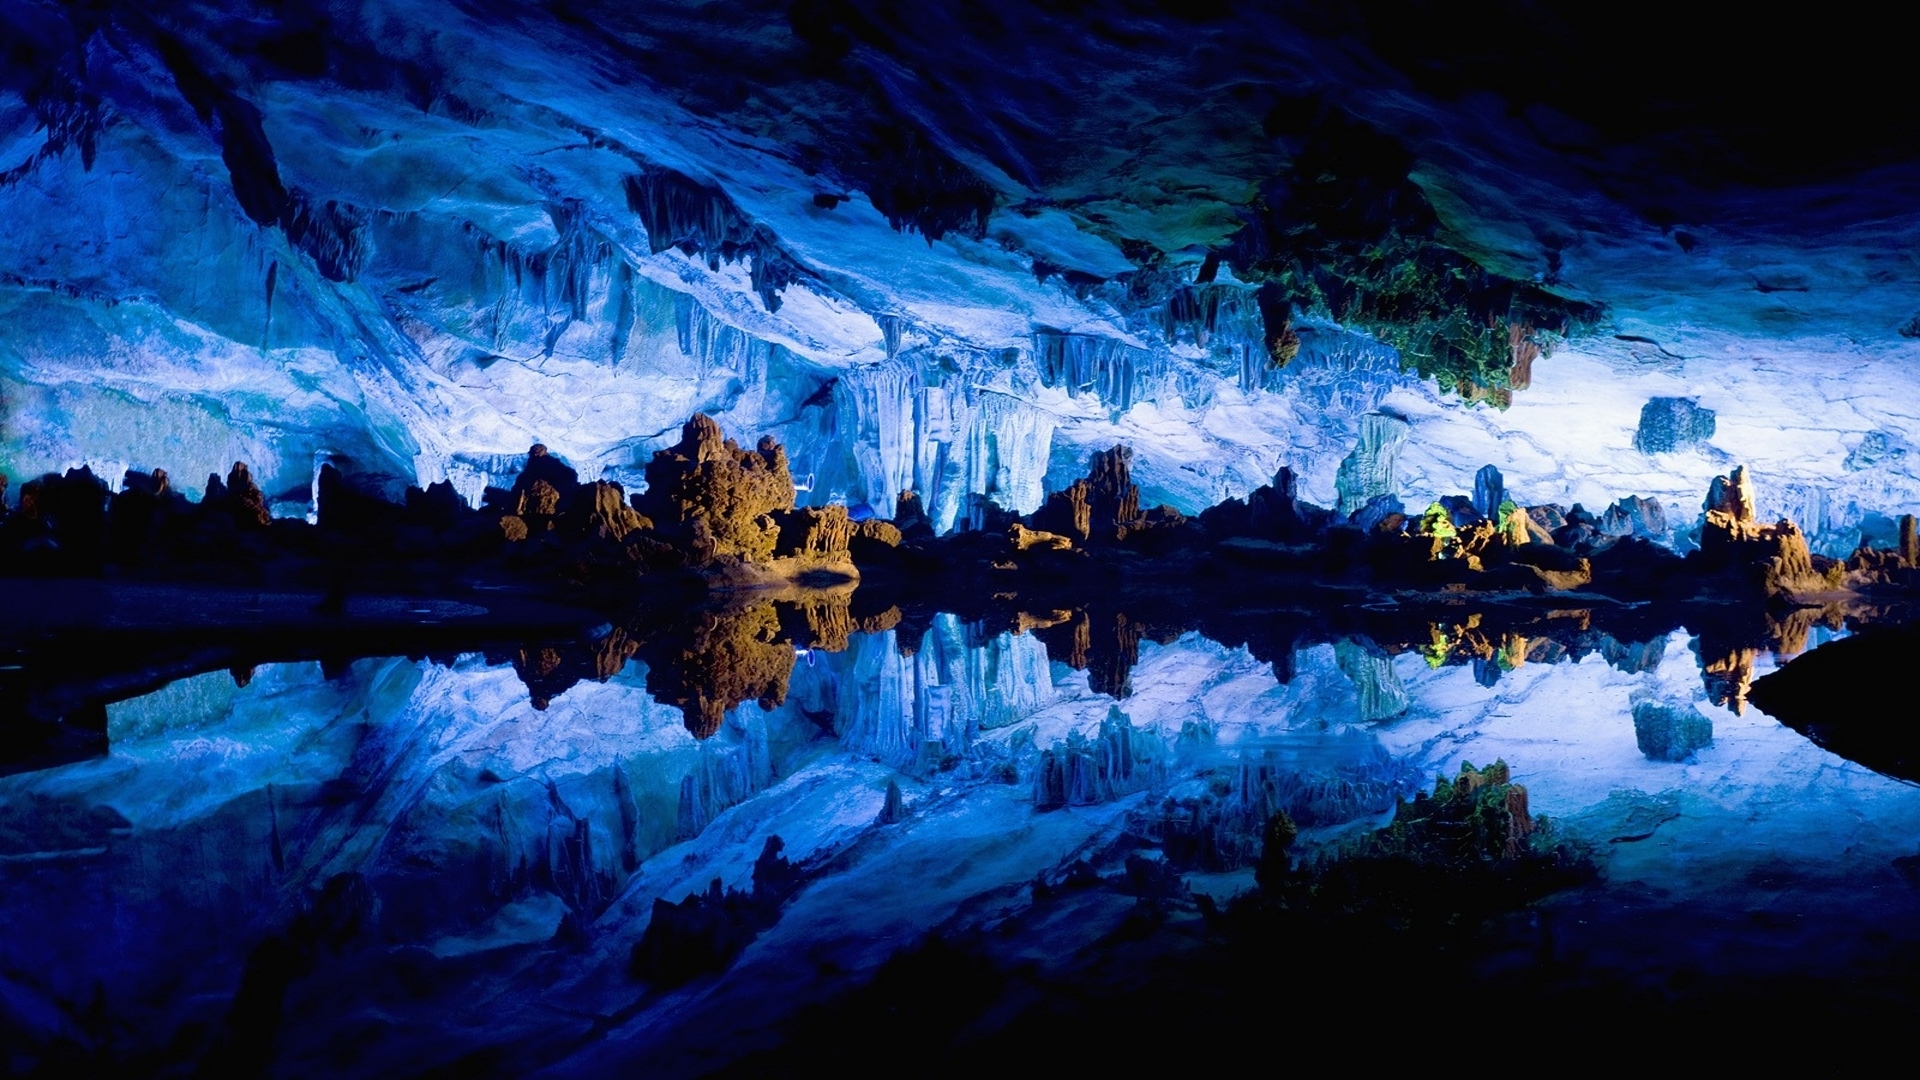 Hq cave wallpaper full hd pictures for Wallpaper pictures